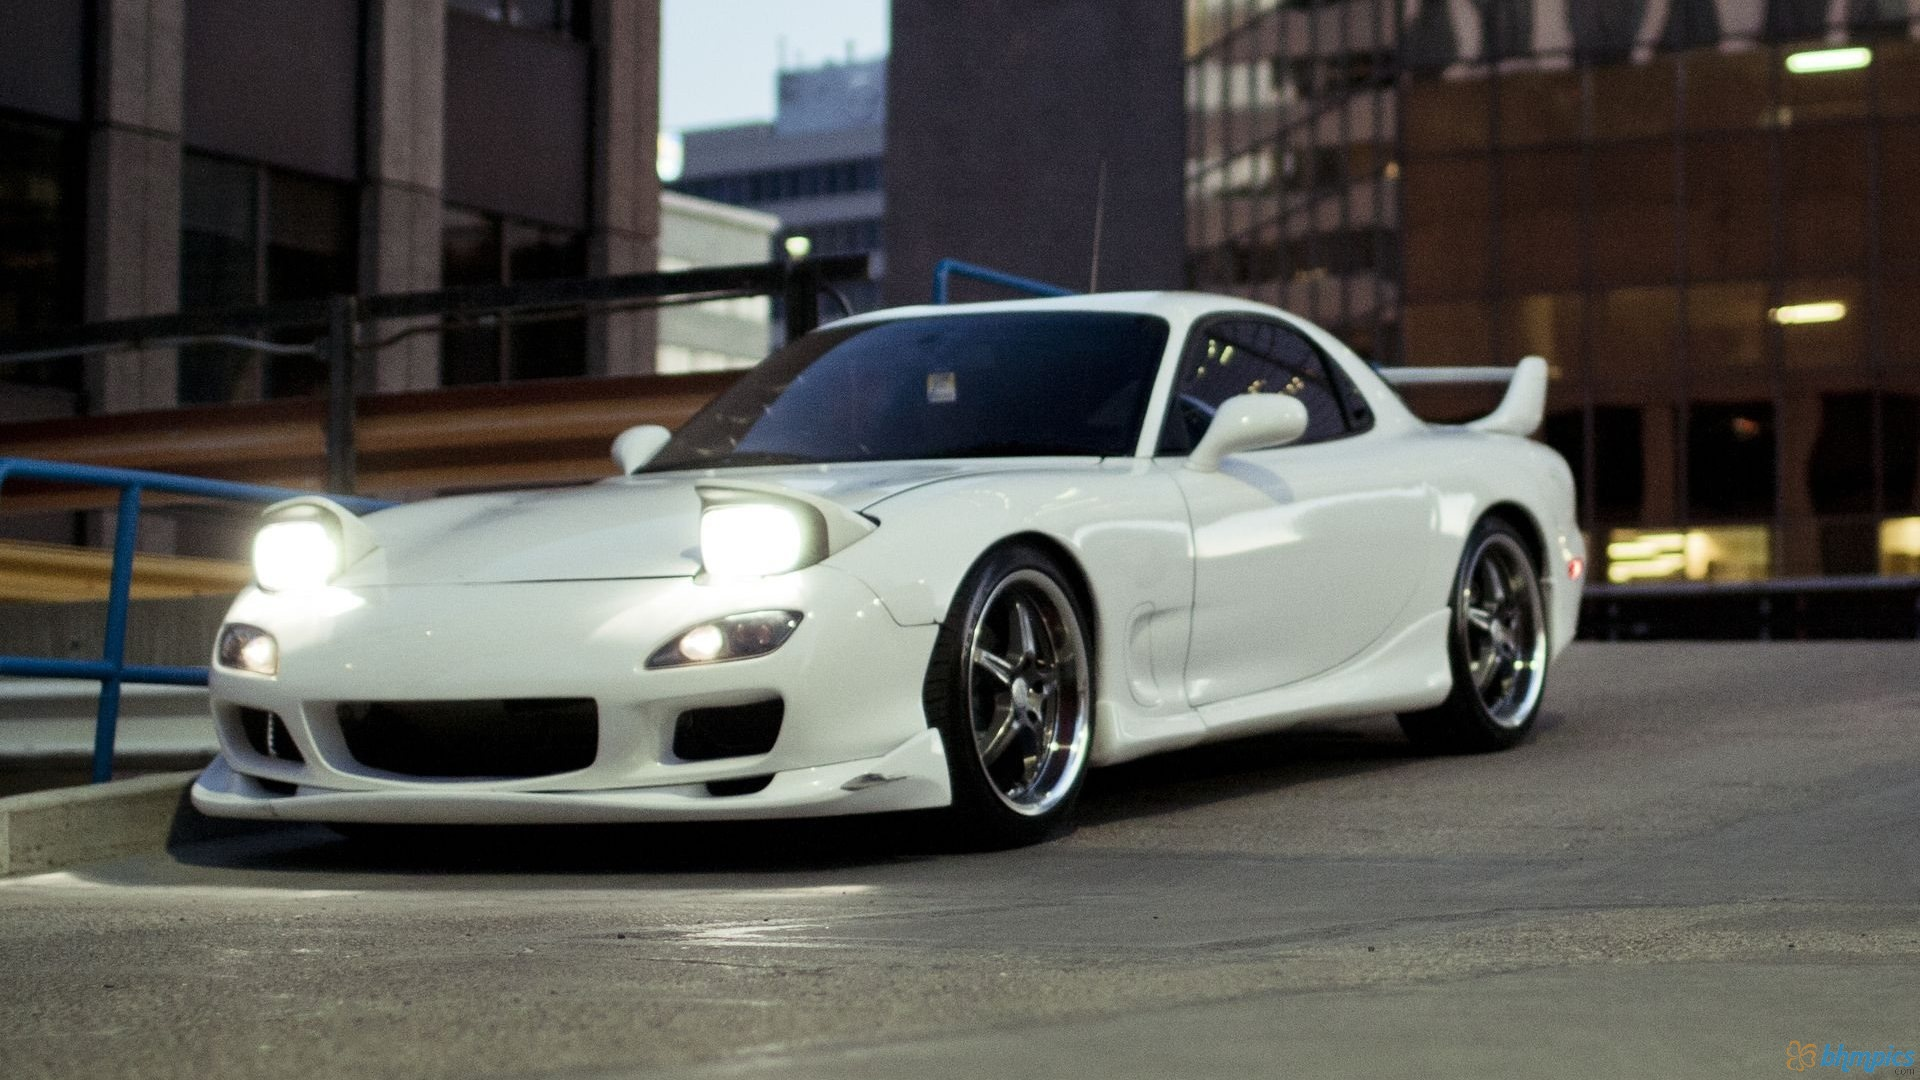 Cars With Pop Up Lights - Mazda RX-7